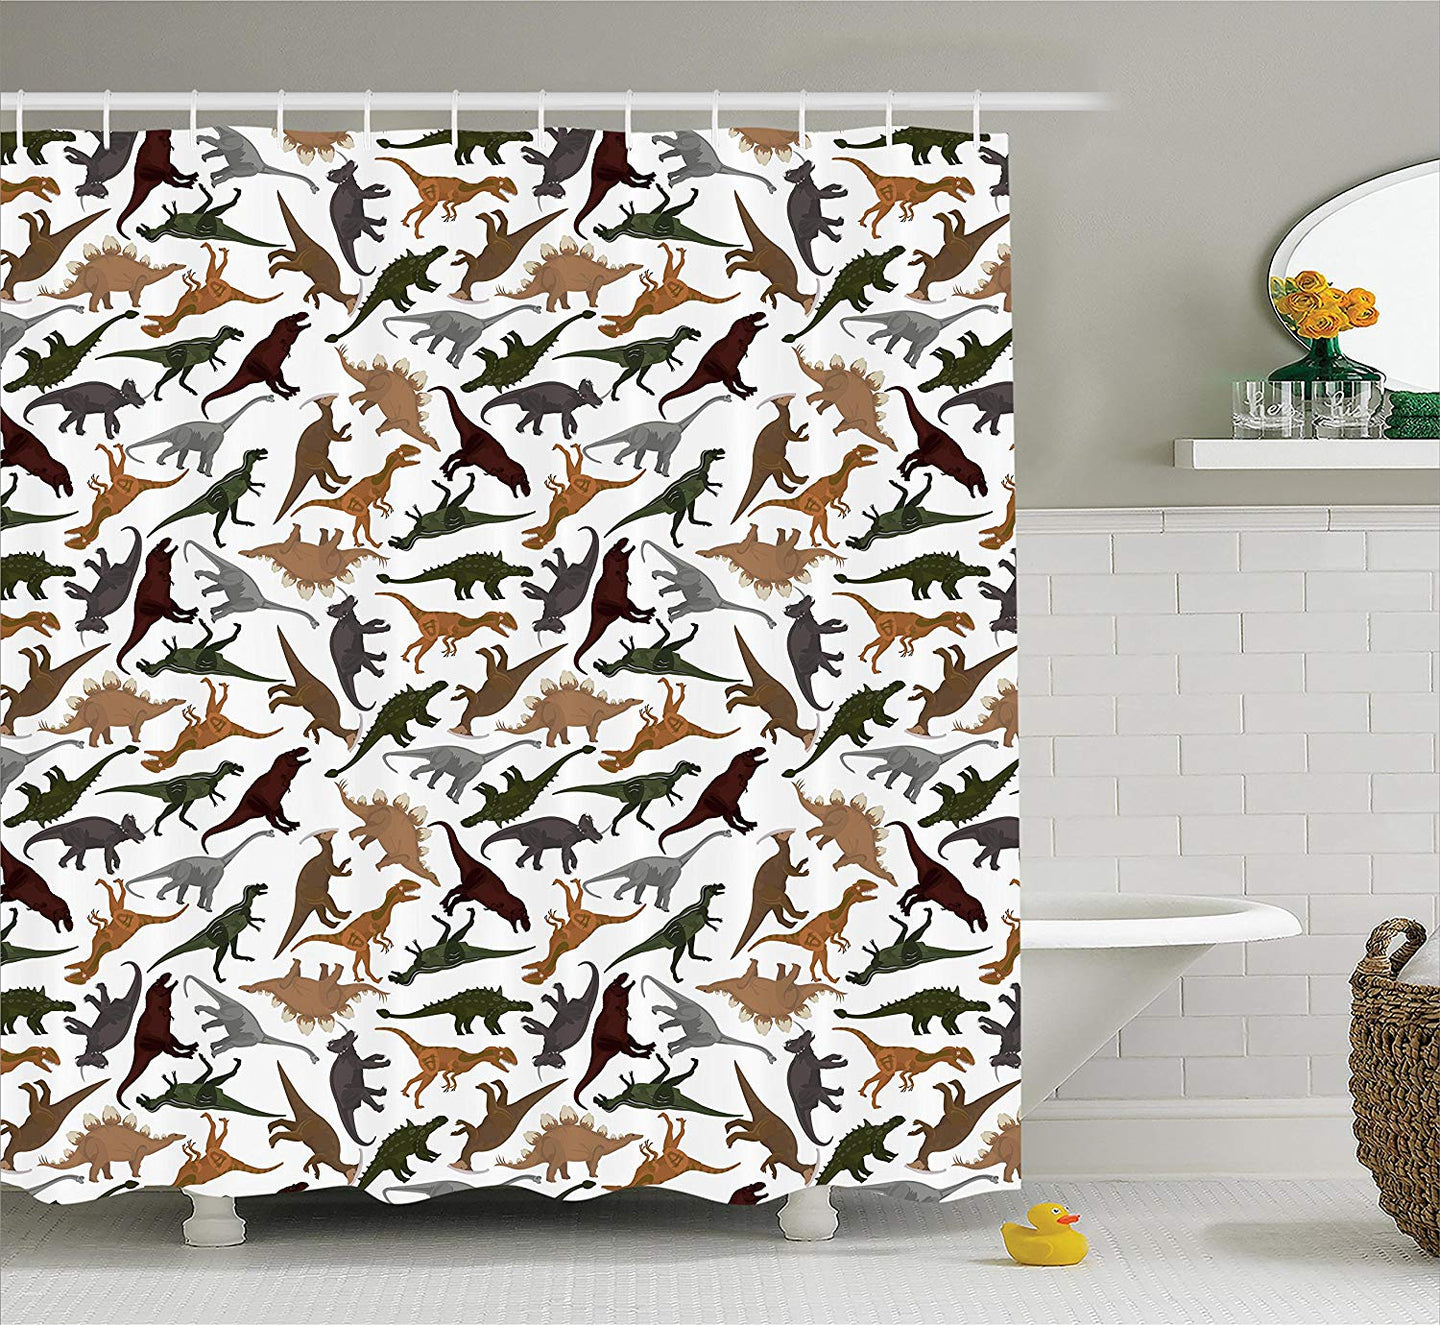 Jurassic Shower Curtain Pattern With Dinosaurs - Dinosaur Themed Gifts & Accessories